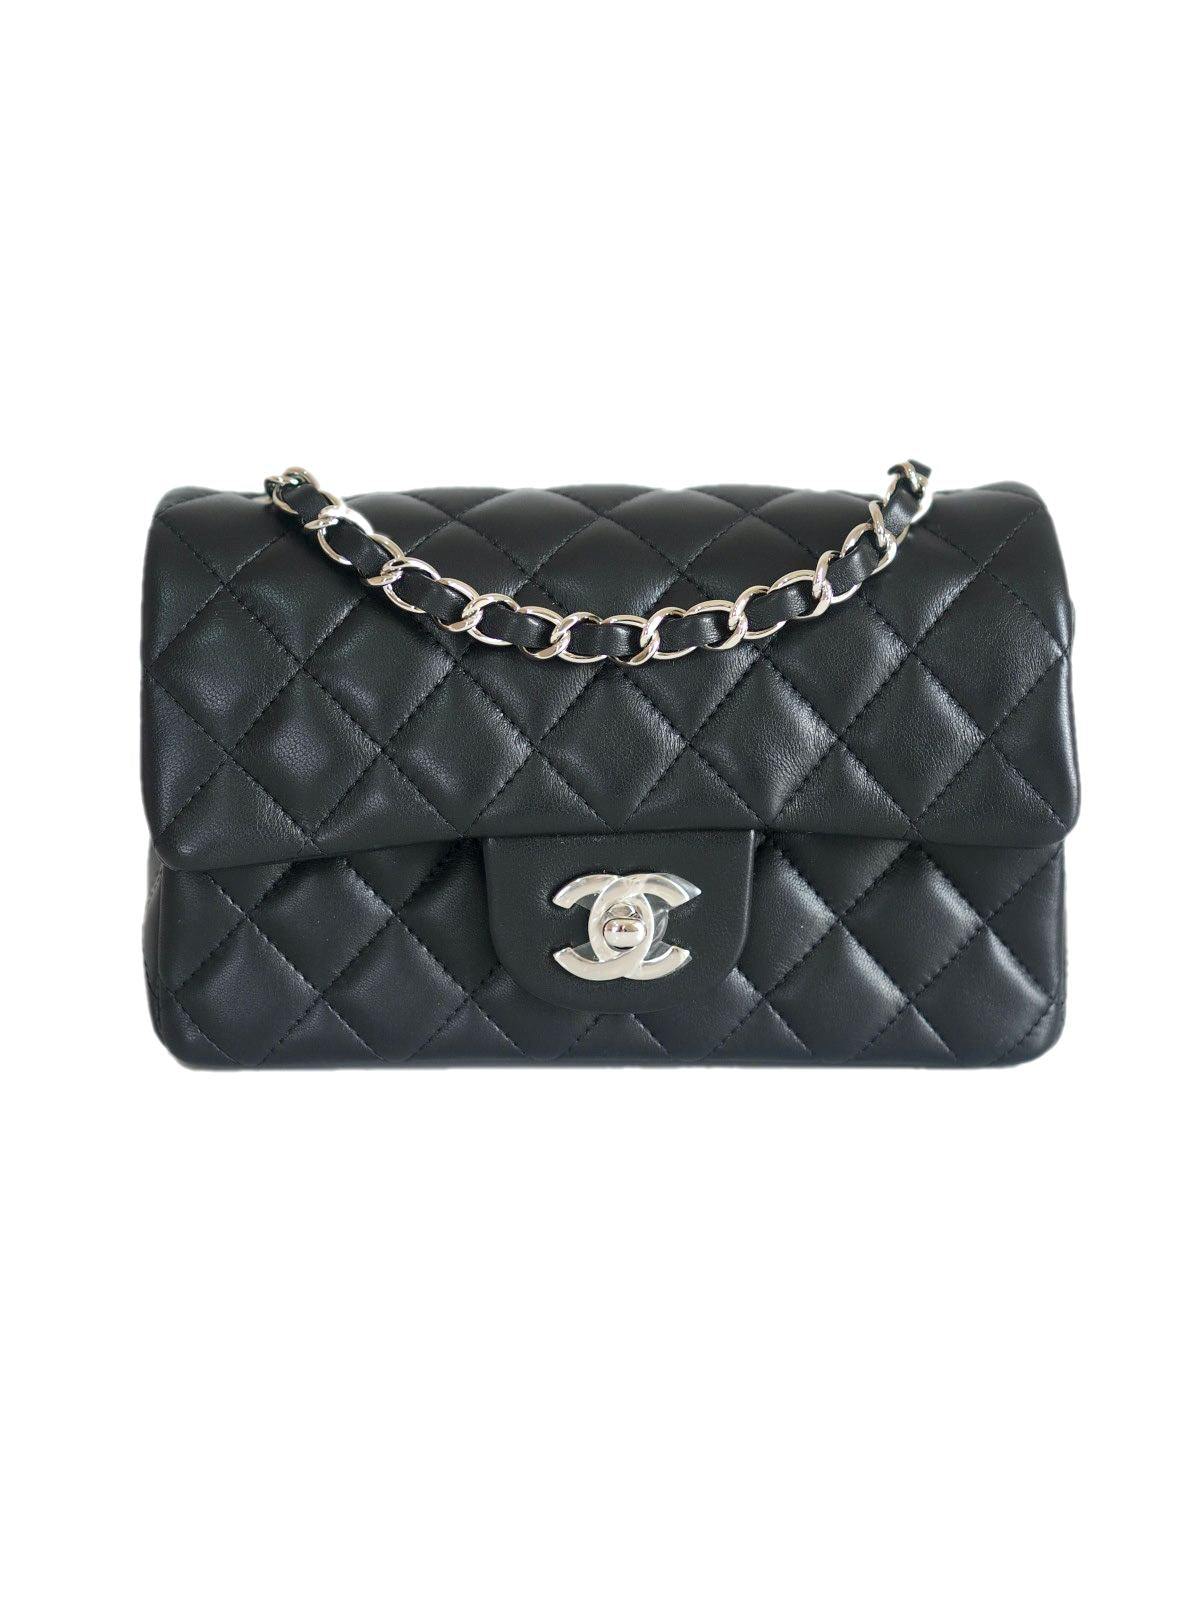 How Much Are Chanel Purses on the Resale Market? chanel mini rectangular flap